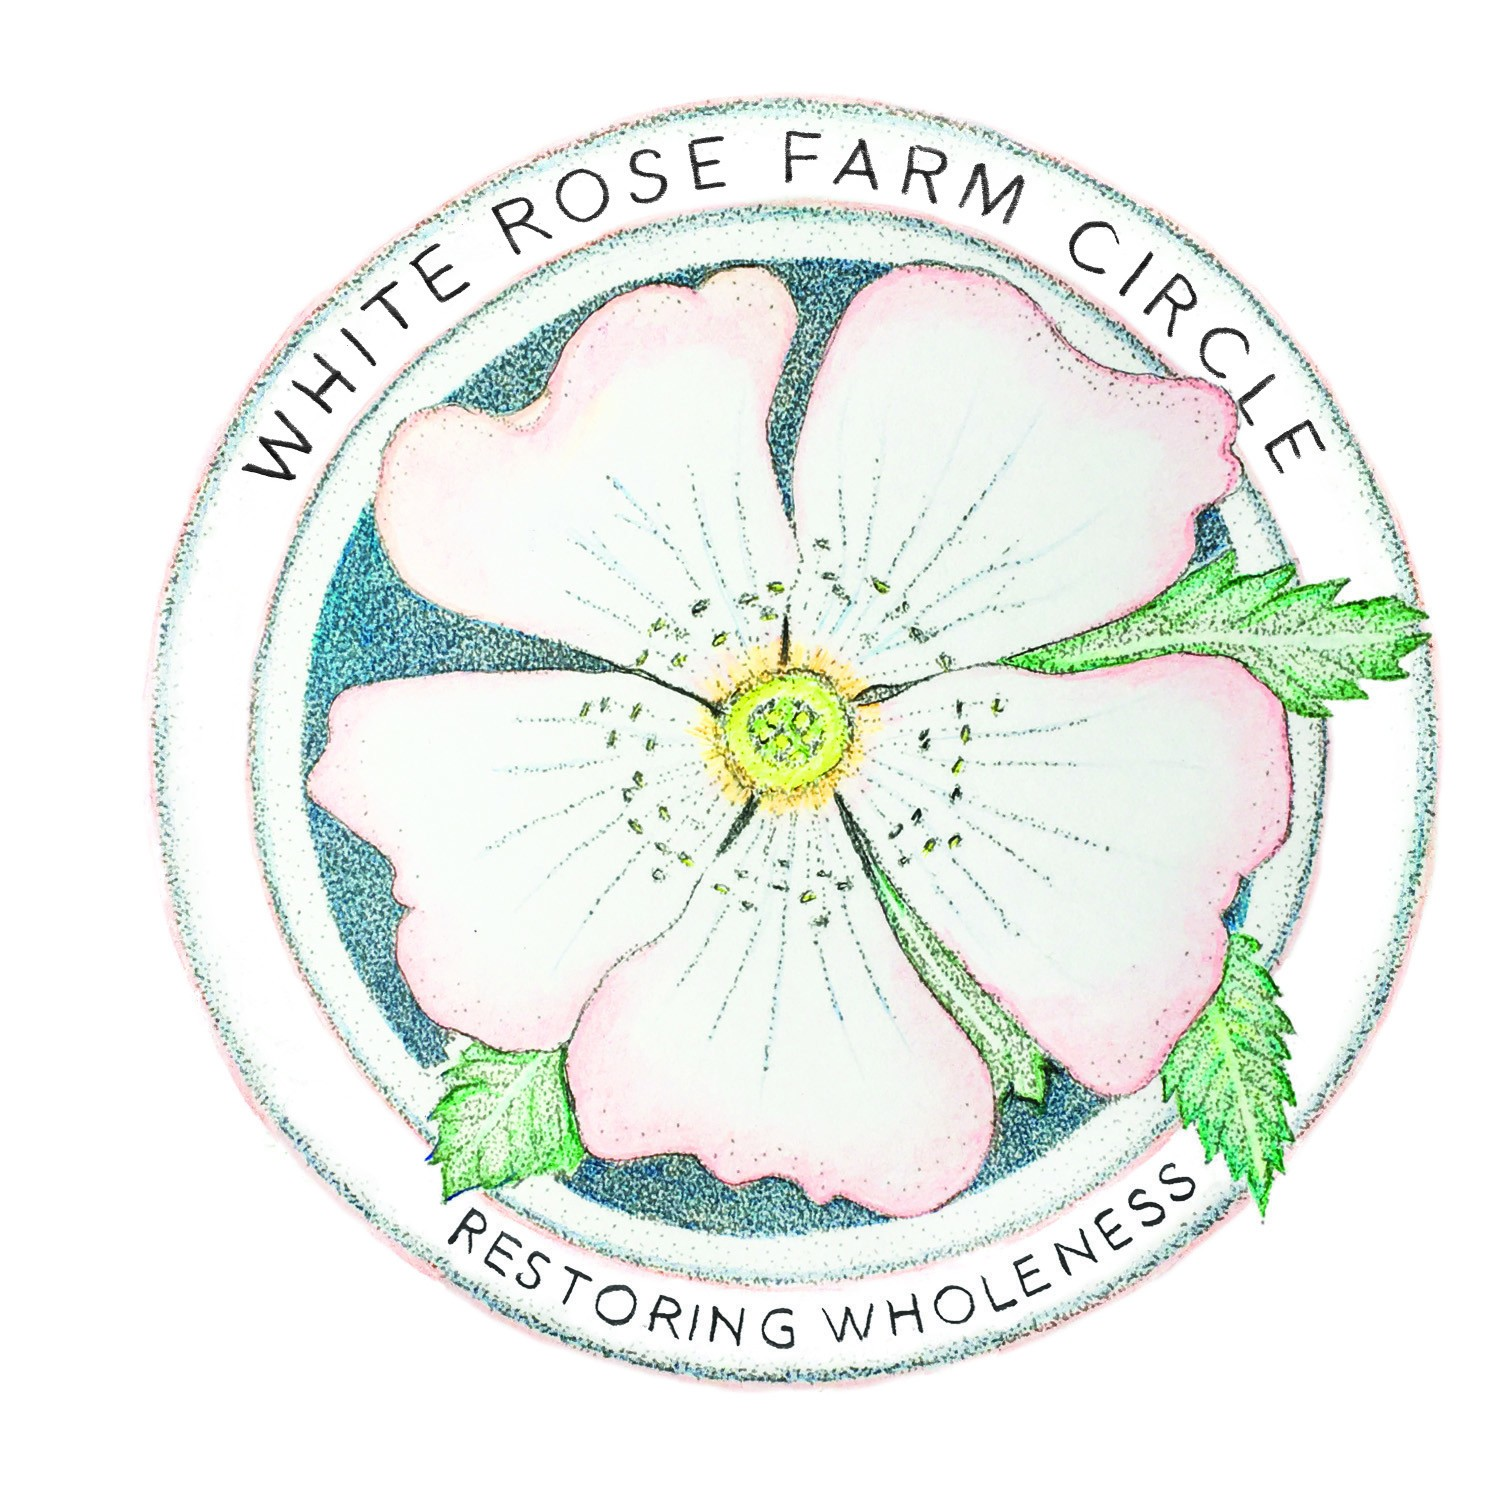 White rose farm white rose farm circle inc fosters community to empower people to work together to restore health to the land the natural world and each other mightylinksfo